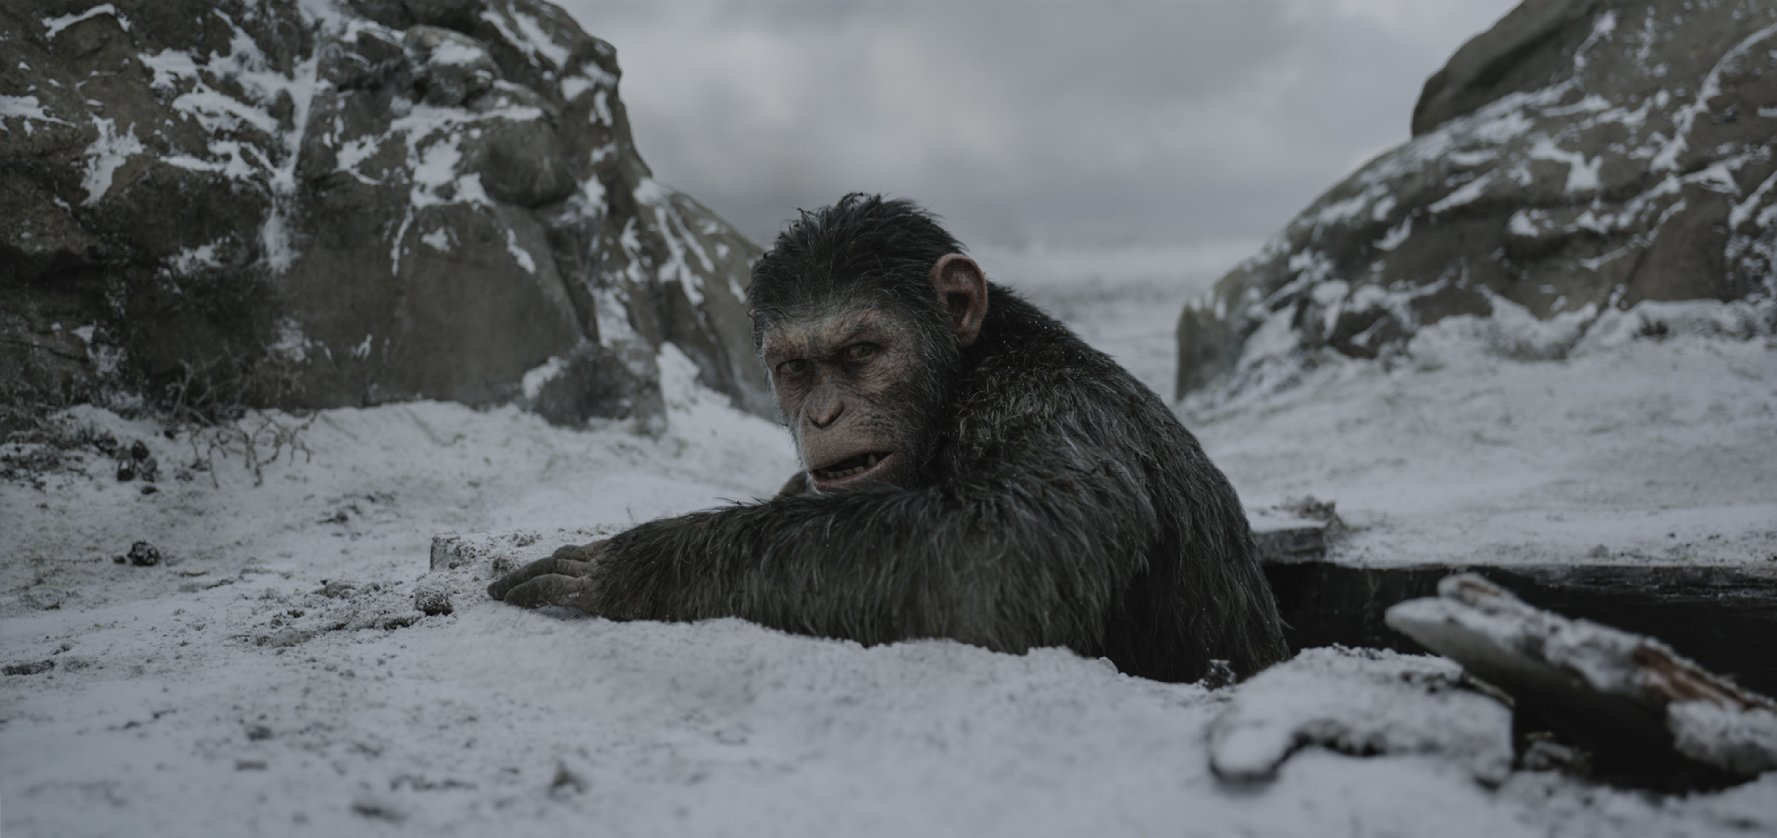 Slanted Review: War for the Planet of the Apes